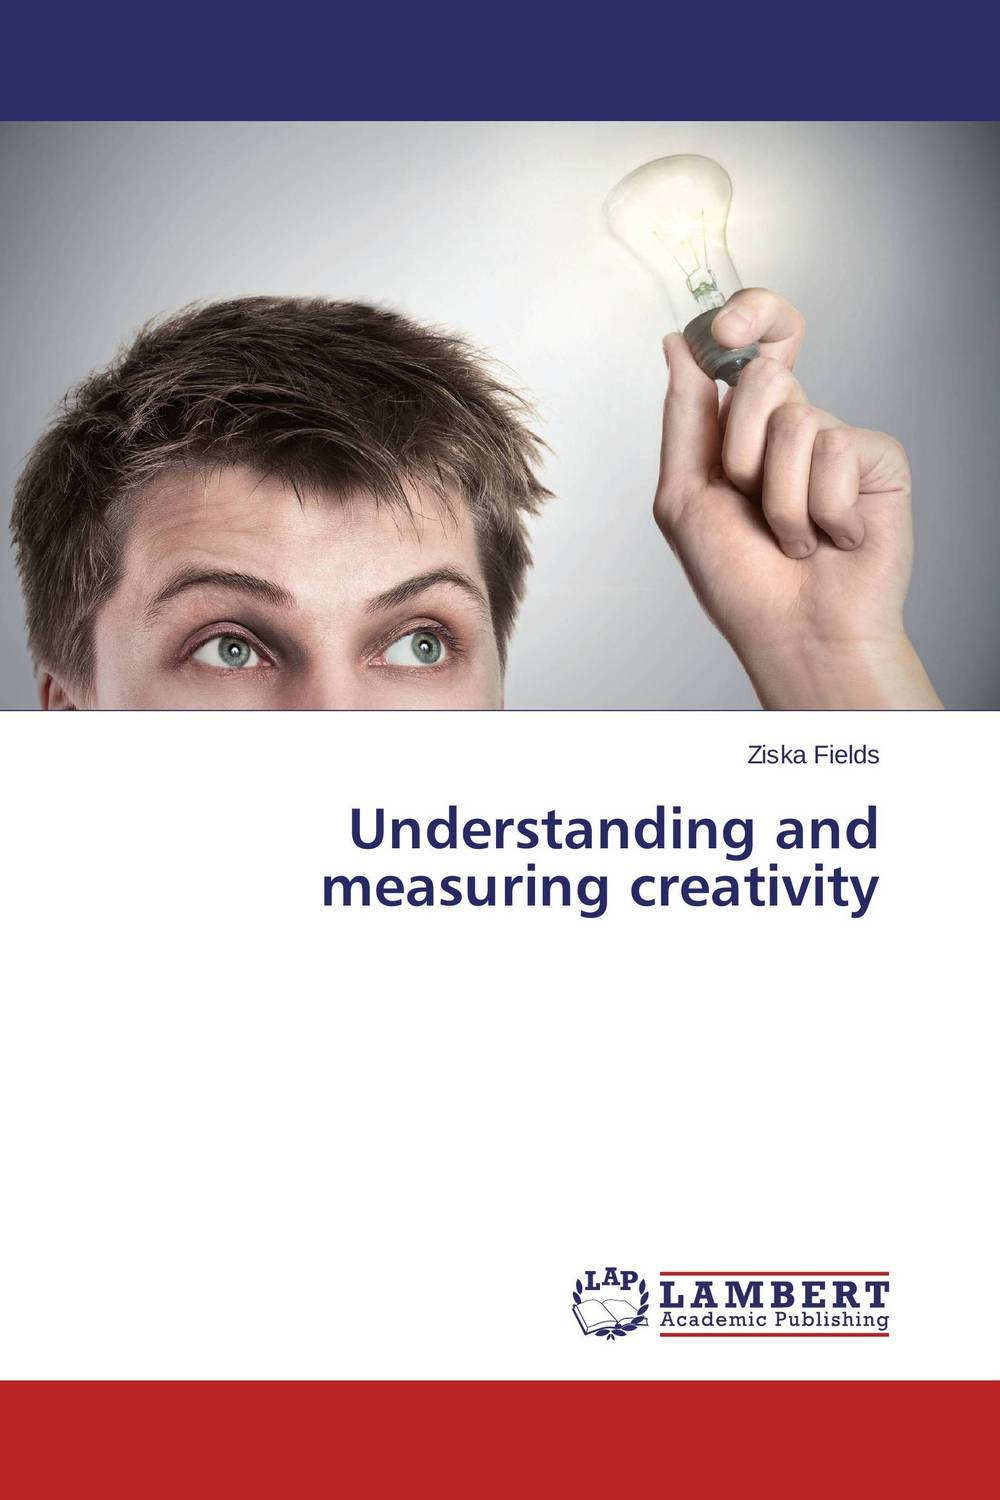 Understanding and measuring creativity the sky is falling – understanding